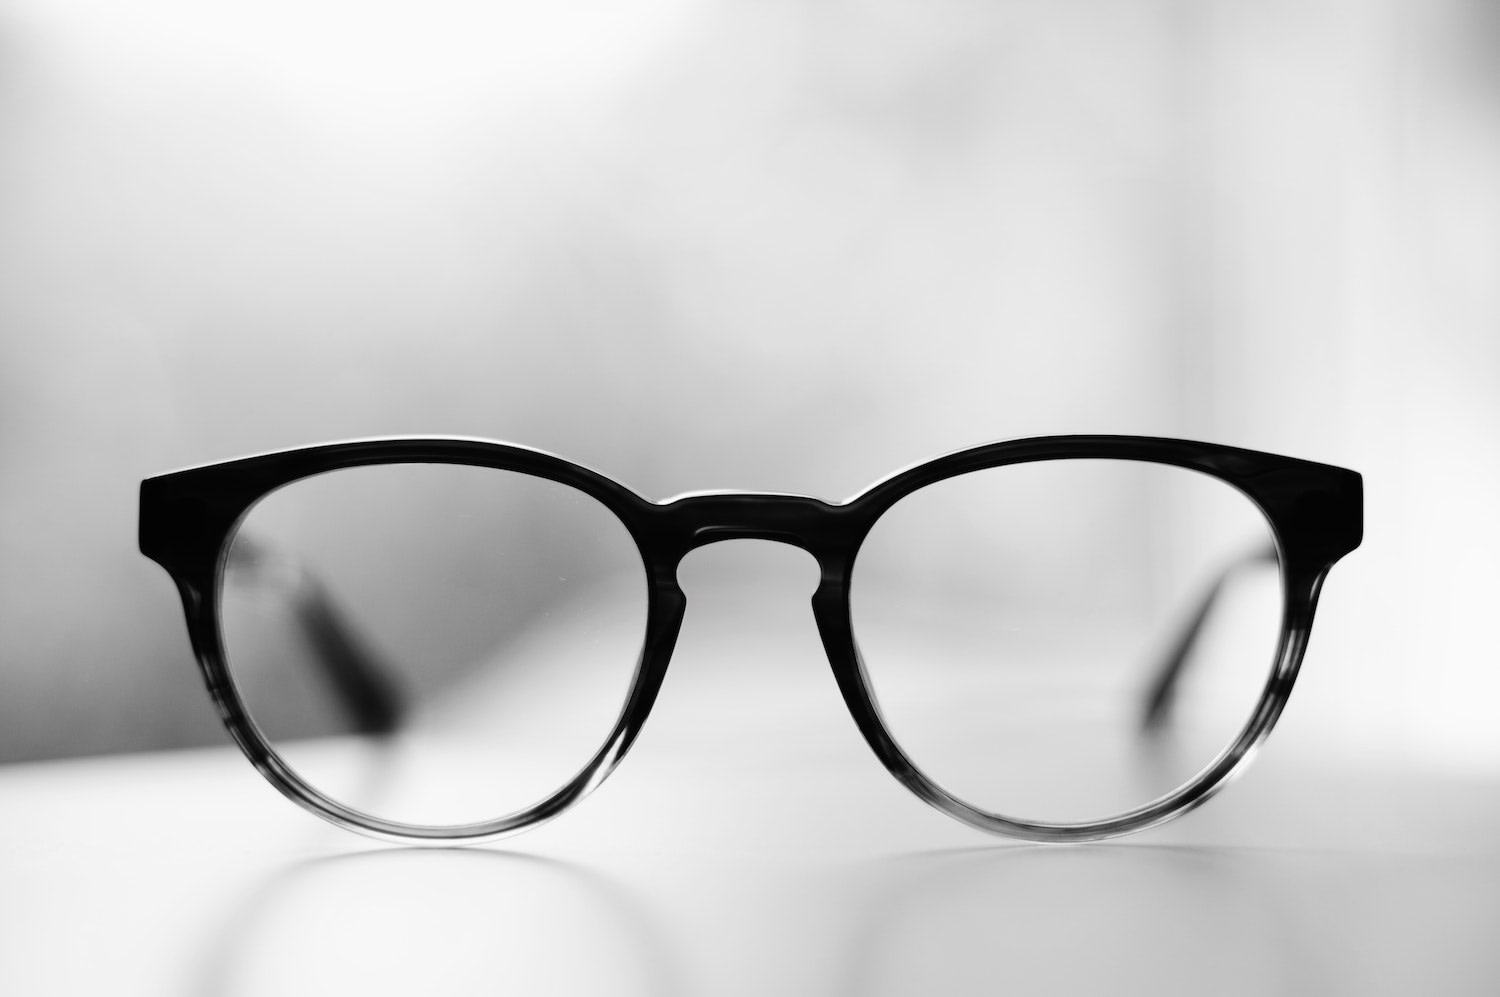 A pair of glasses in an article about how to read fund factsheets.